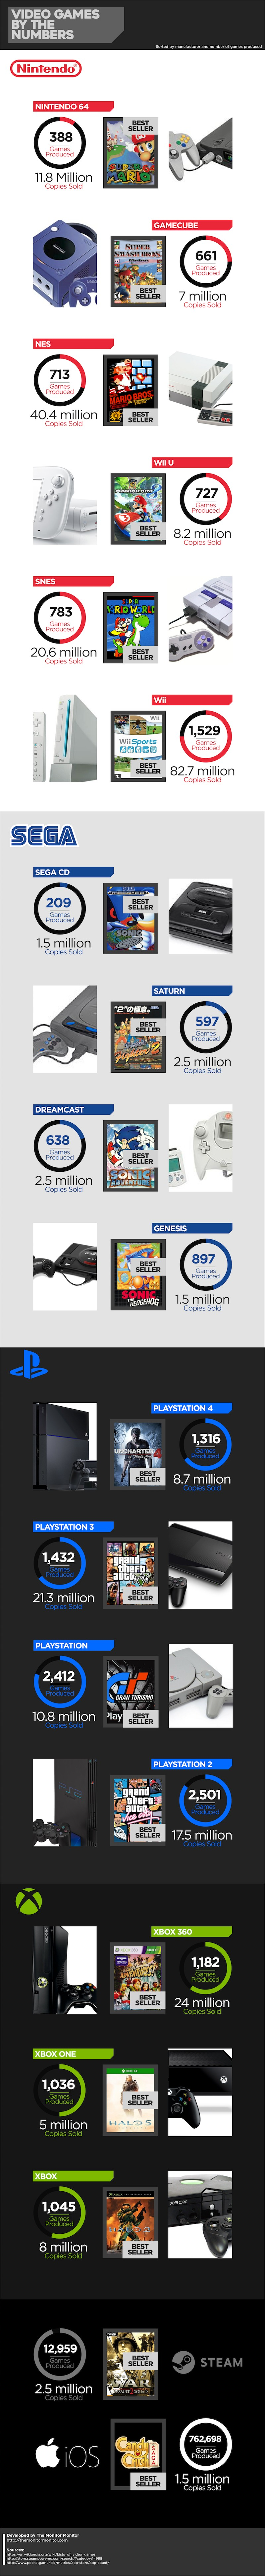 Video Games Produced and Sold Over The Years